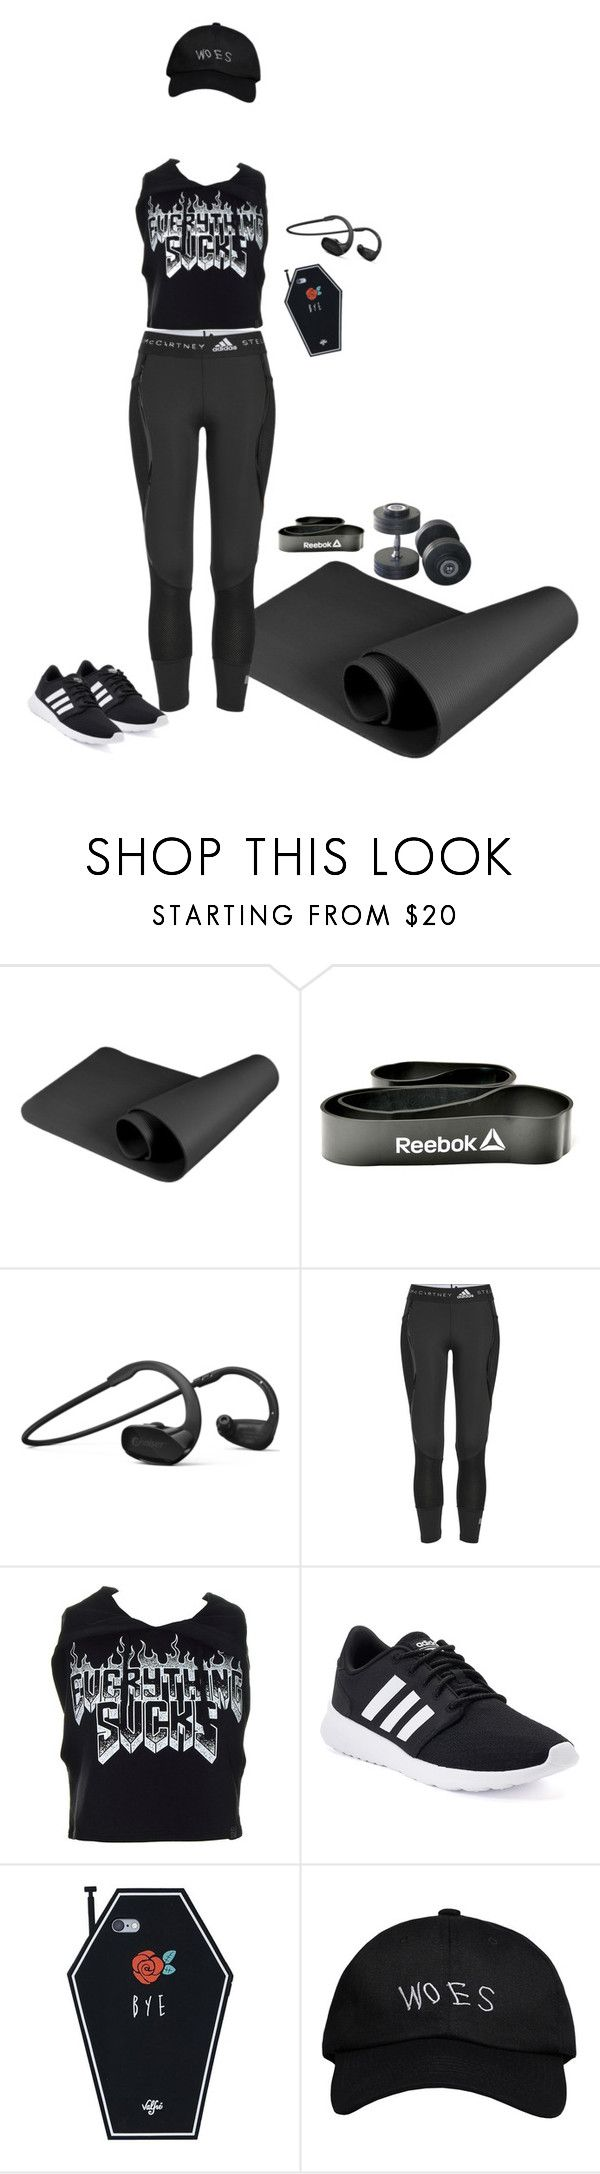 """Shitty attitude, but still gonna sweat it out 💪💦✨"" by sierraelizabitch ❤ liked on Polyvore featuring Reebok, adidas, Kill Star and October's Very Own"